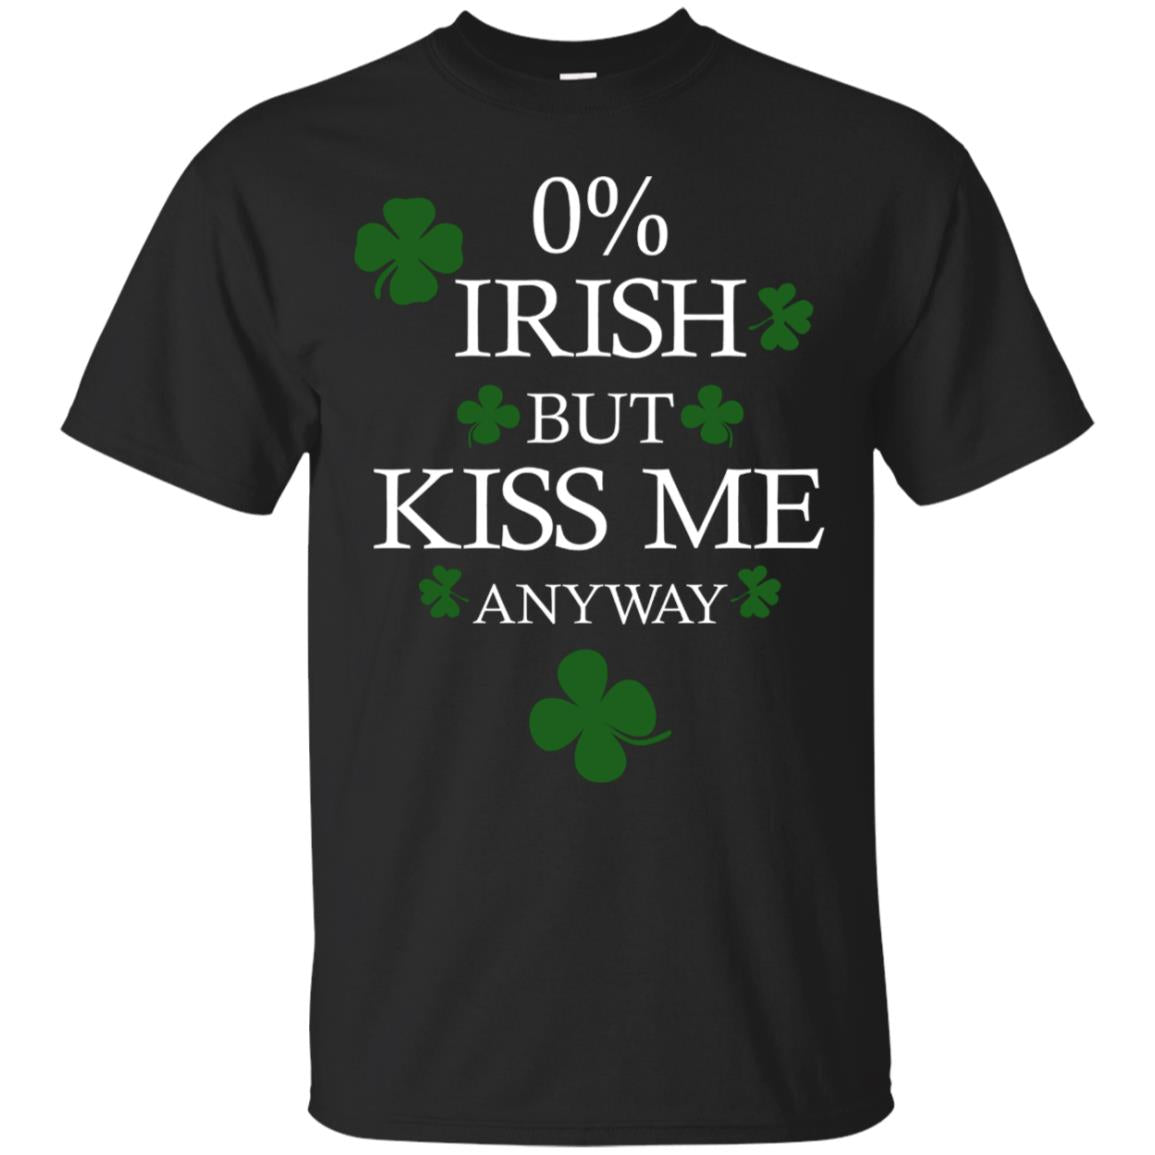 0% Irish But Kiss Me Anyway St. Patricks Day T-Shirt 99promocode